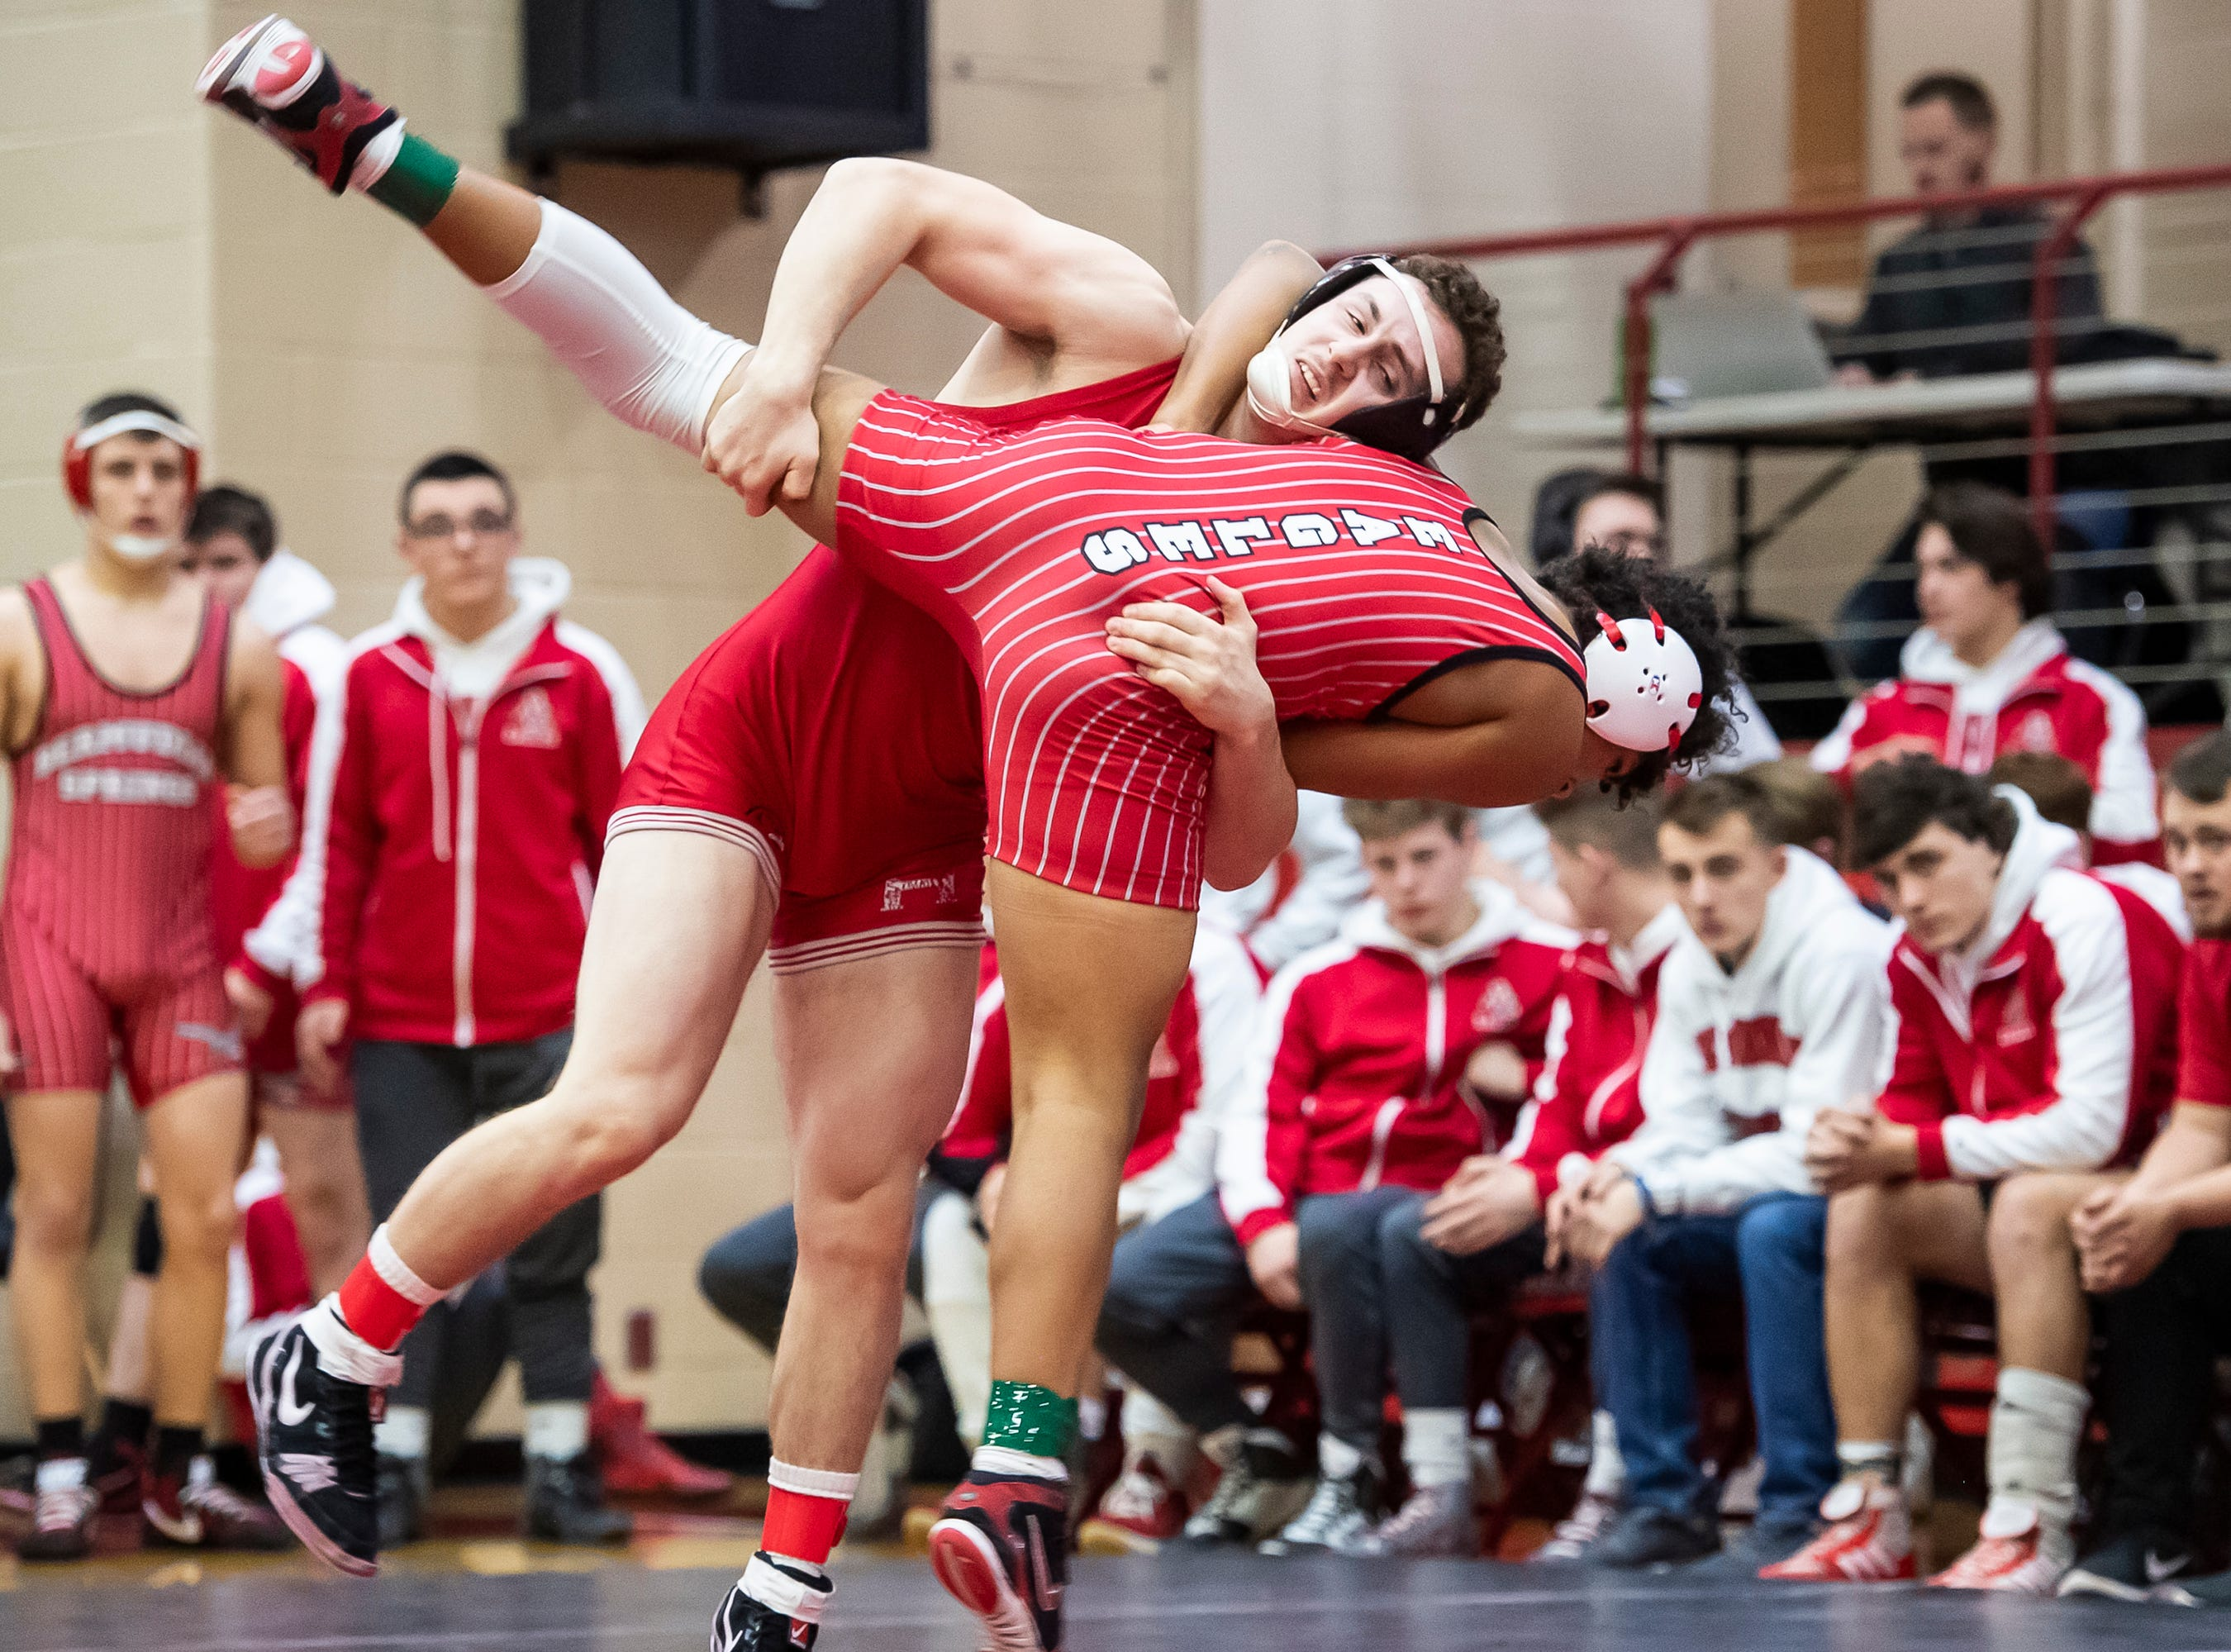 Bermudian Springs' Savauri Shelton, bottom, wrestles Hamburg's Brendan Hamilton in a 170-pound bout during a PIAA District III 2A semifinal match at Cumberland Valley High School January 31, 2019. The Eagles fell 43-24.